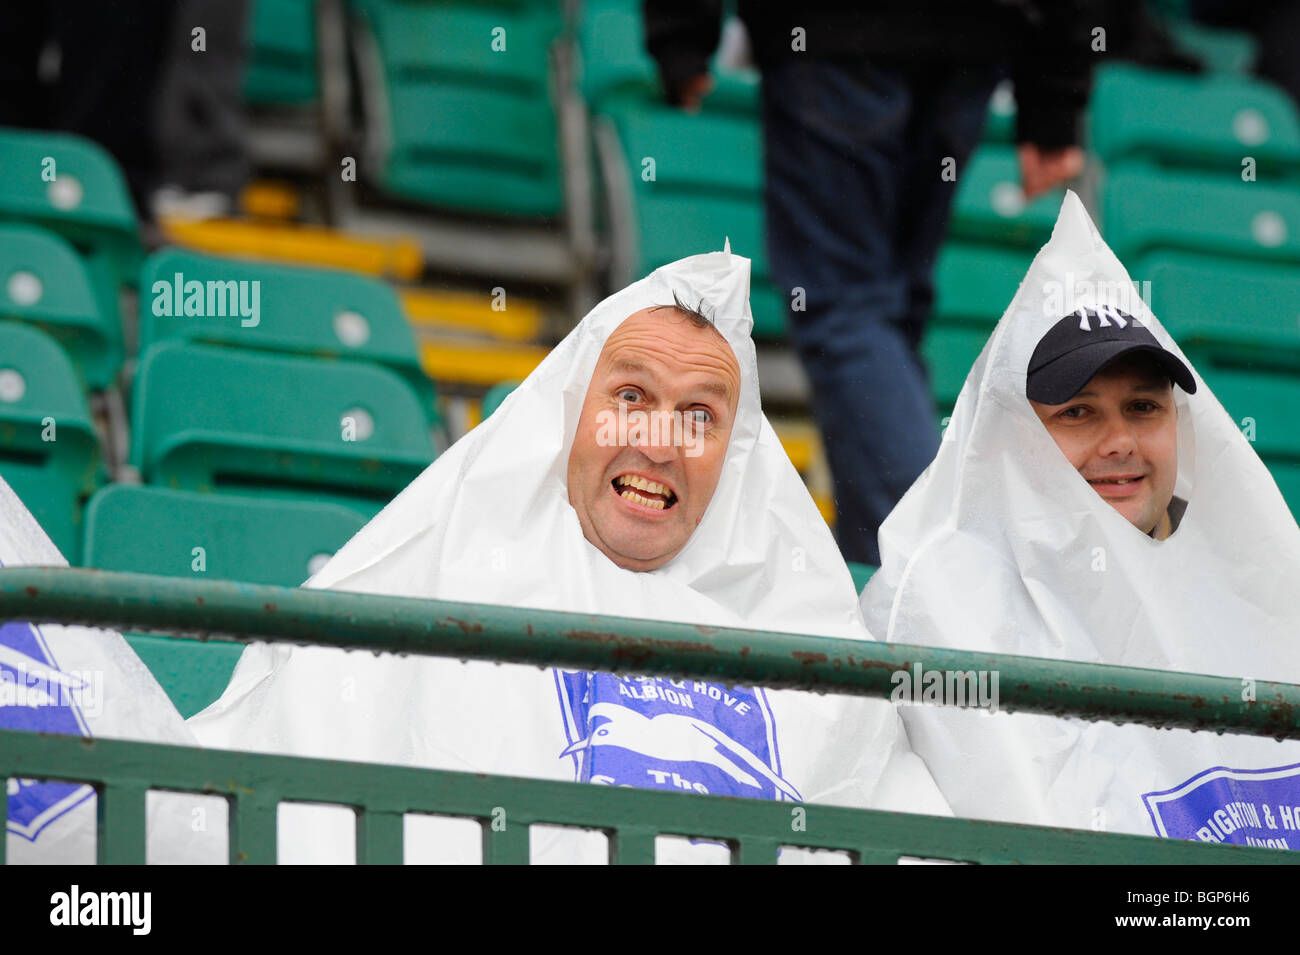 Heavy rain sees these two dedicated football supporters wearing pyramid shaped plastic bags to keep dry at Brighton. - Stock Image